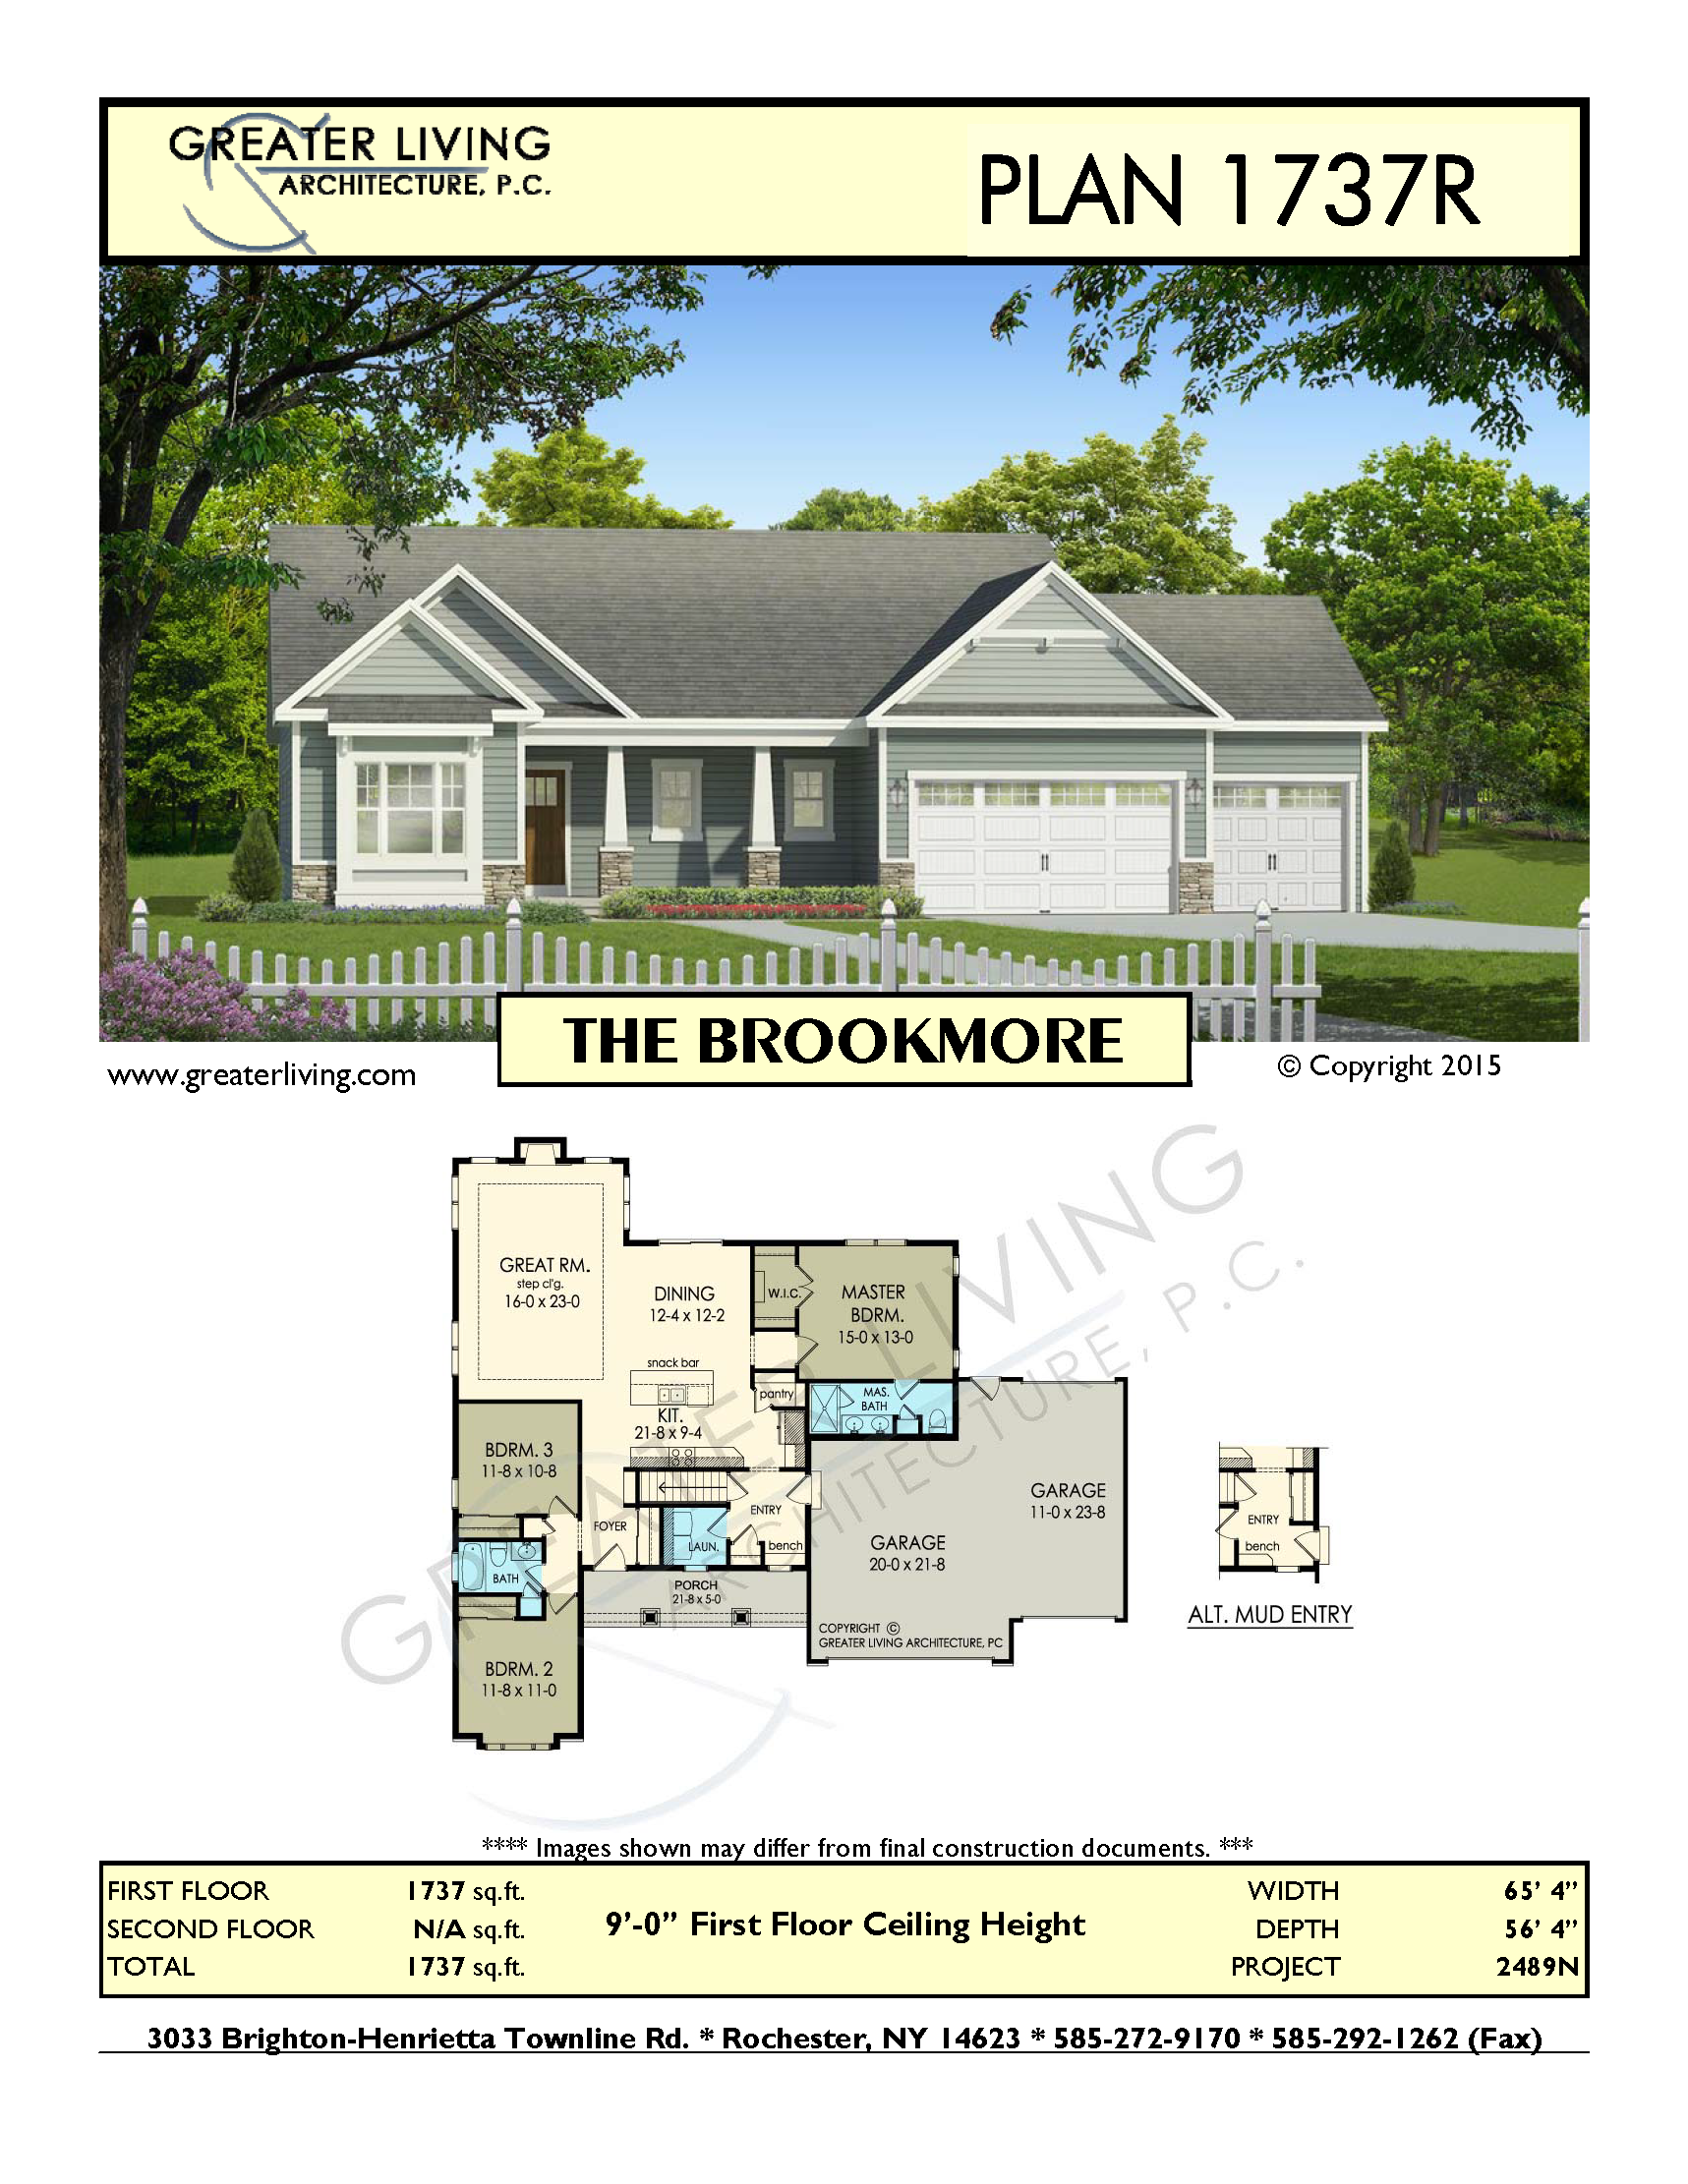 Plan 1737R: THE BROOKMORE | House plans | Pinterest | Architecture ...